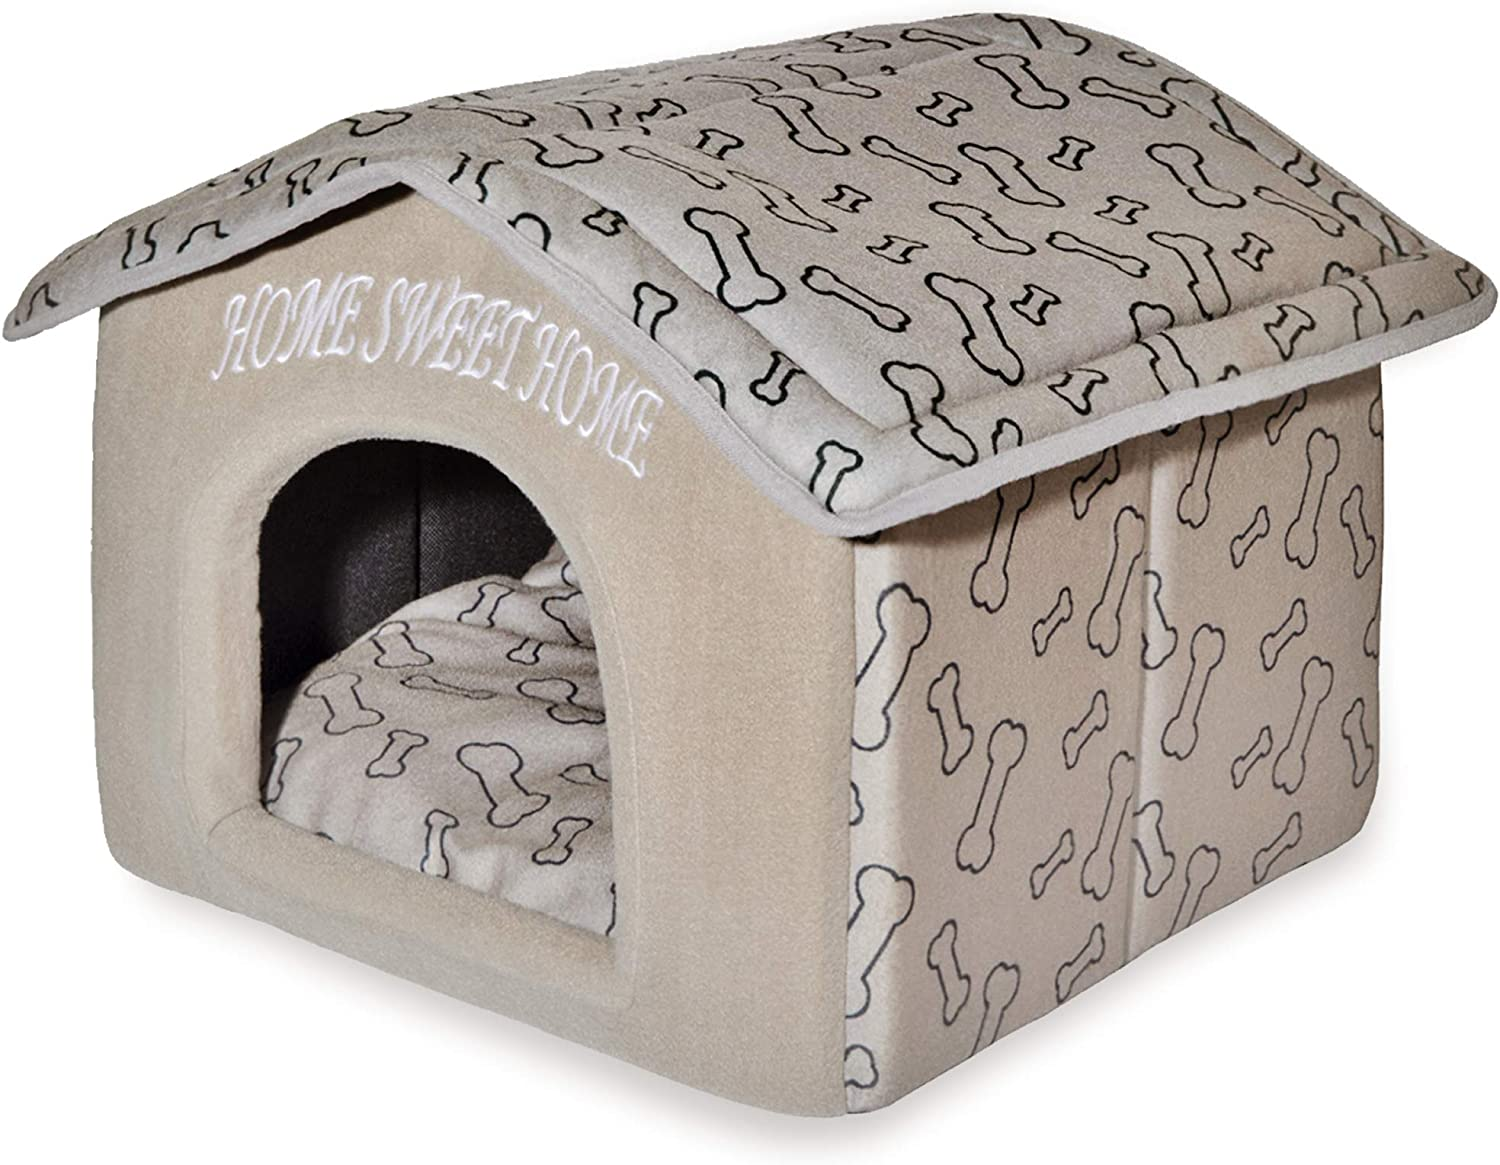 Best Pet Supplies Portable Indoor Pet House Perfect For Cats Small Dogs Easy To Assemble Brown Pet Supplies